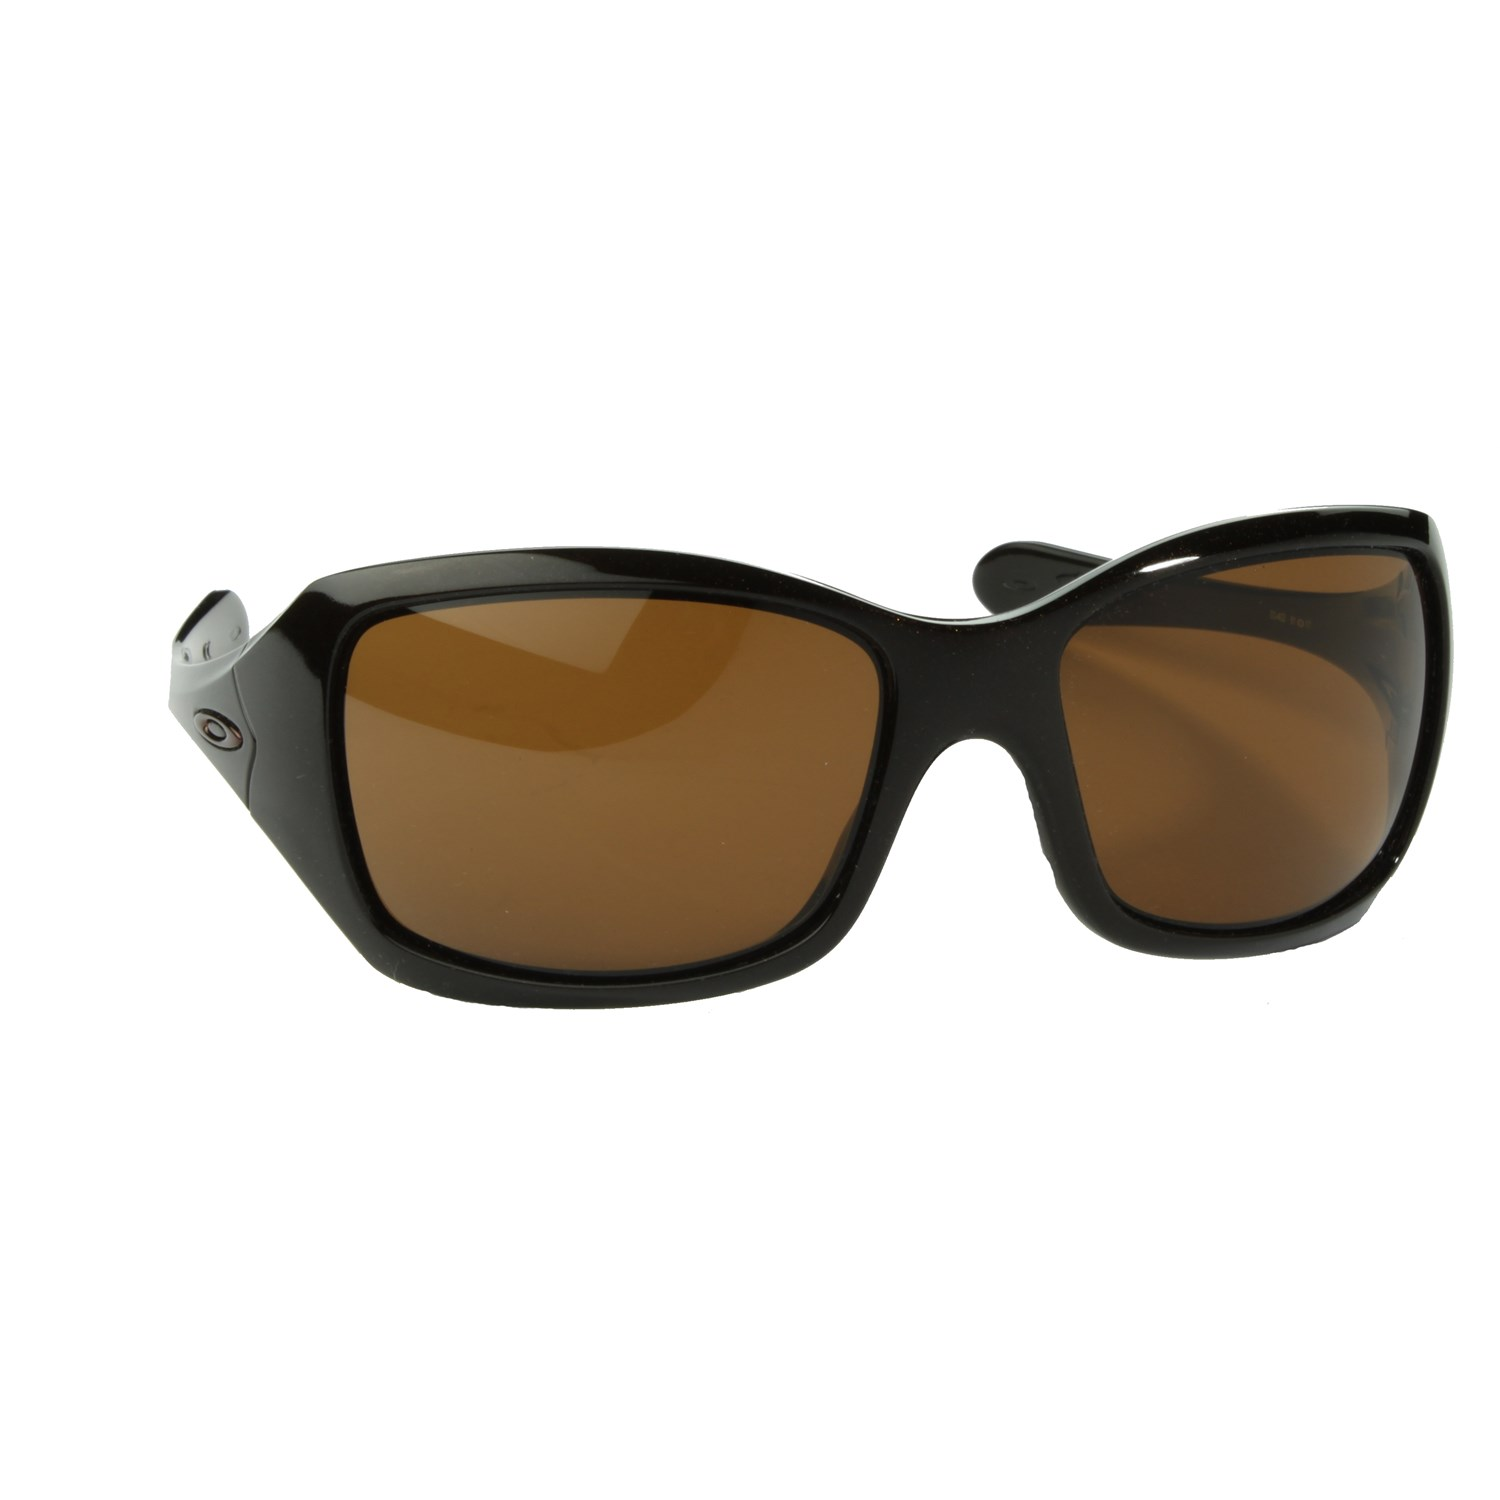 oakley ravishing sunglasses brown sugar  oakley ravishing sunglasses women s brown sugar dark bronze front